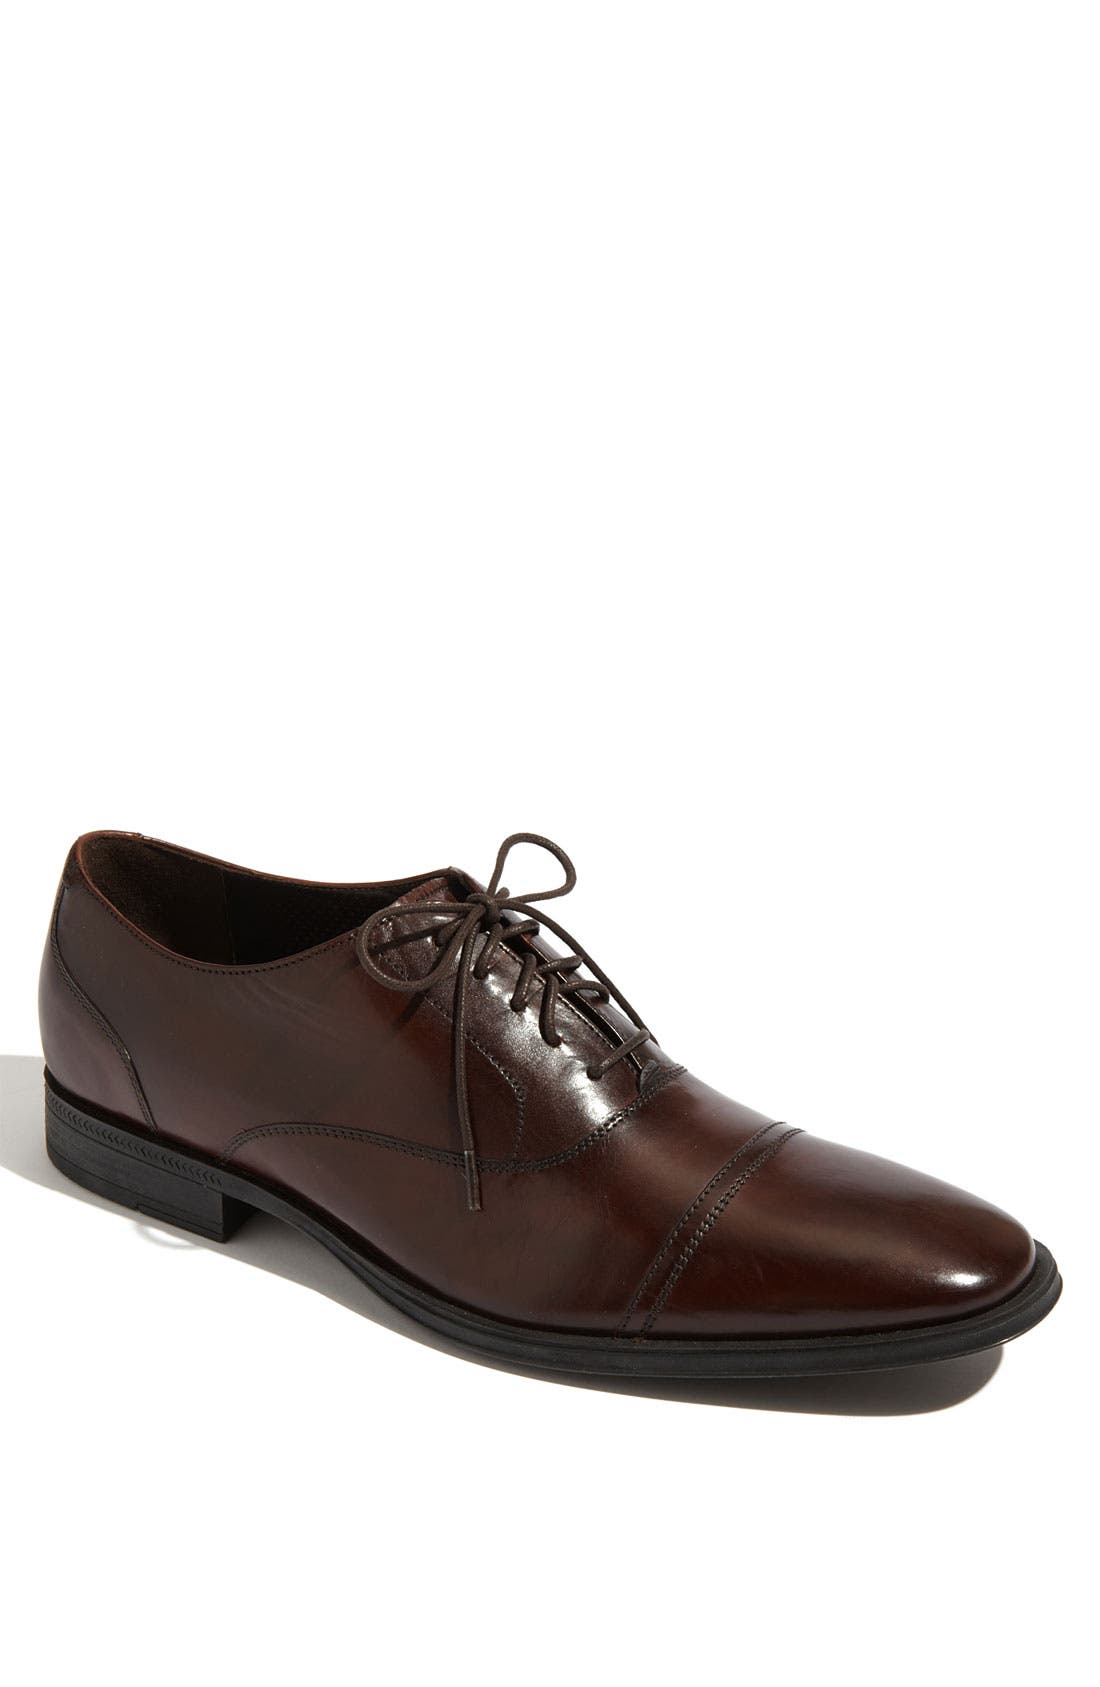 Main Image - Cole Haan 'Air Adams' Cap Toe Oxford (Online Exclusive)